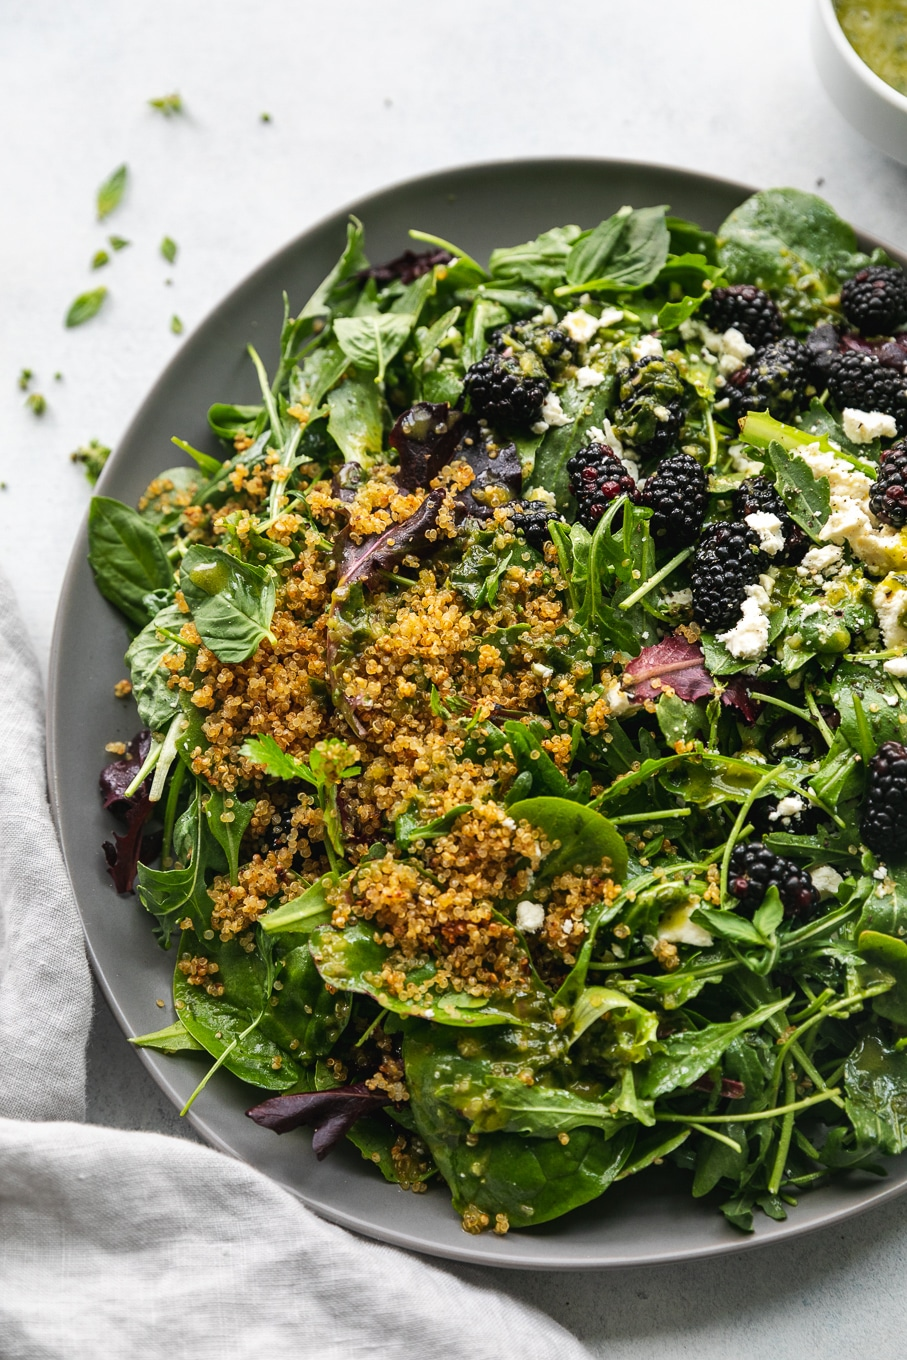 Overhead close up shot of a salad topped with blackberries, feta, and crispy quinoa